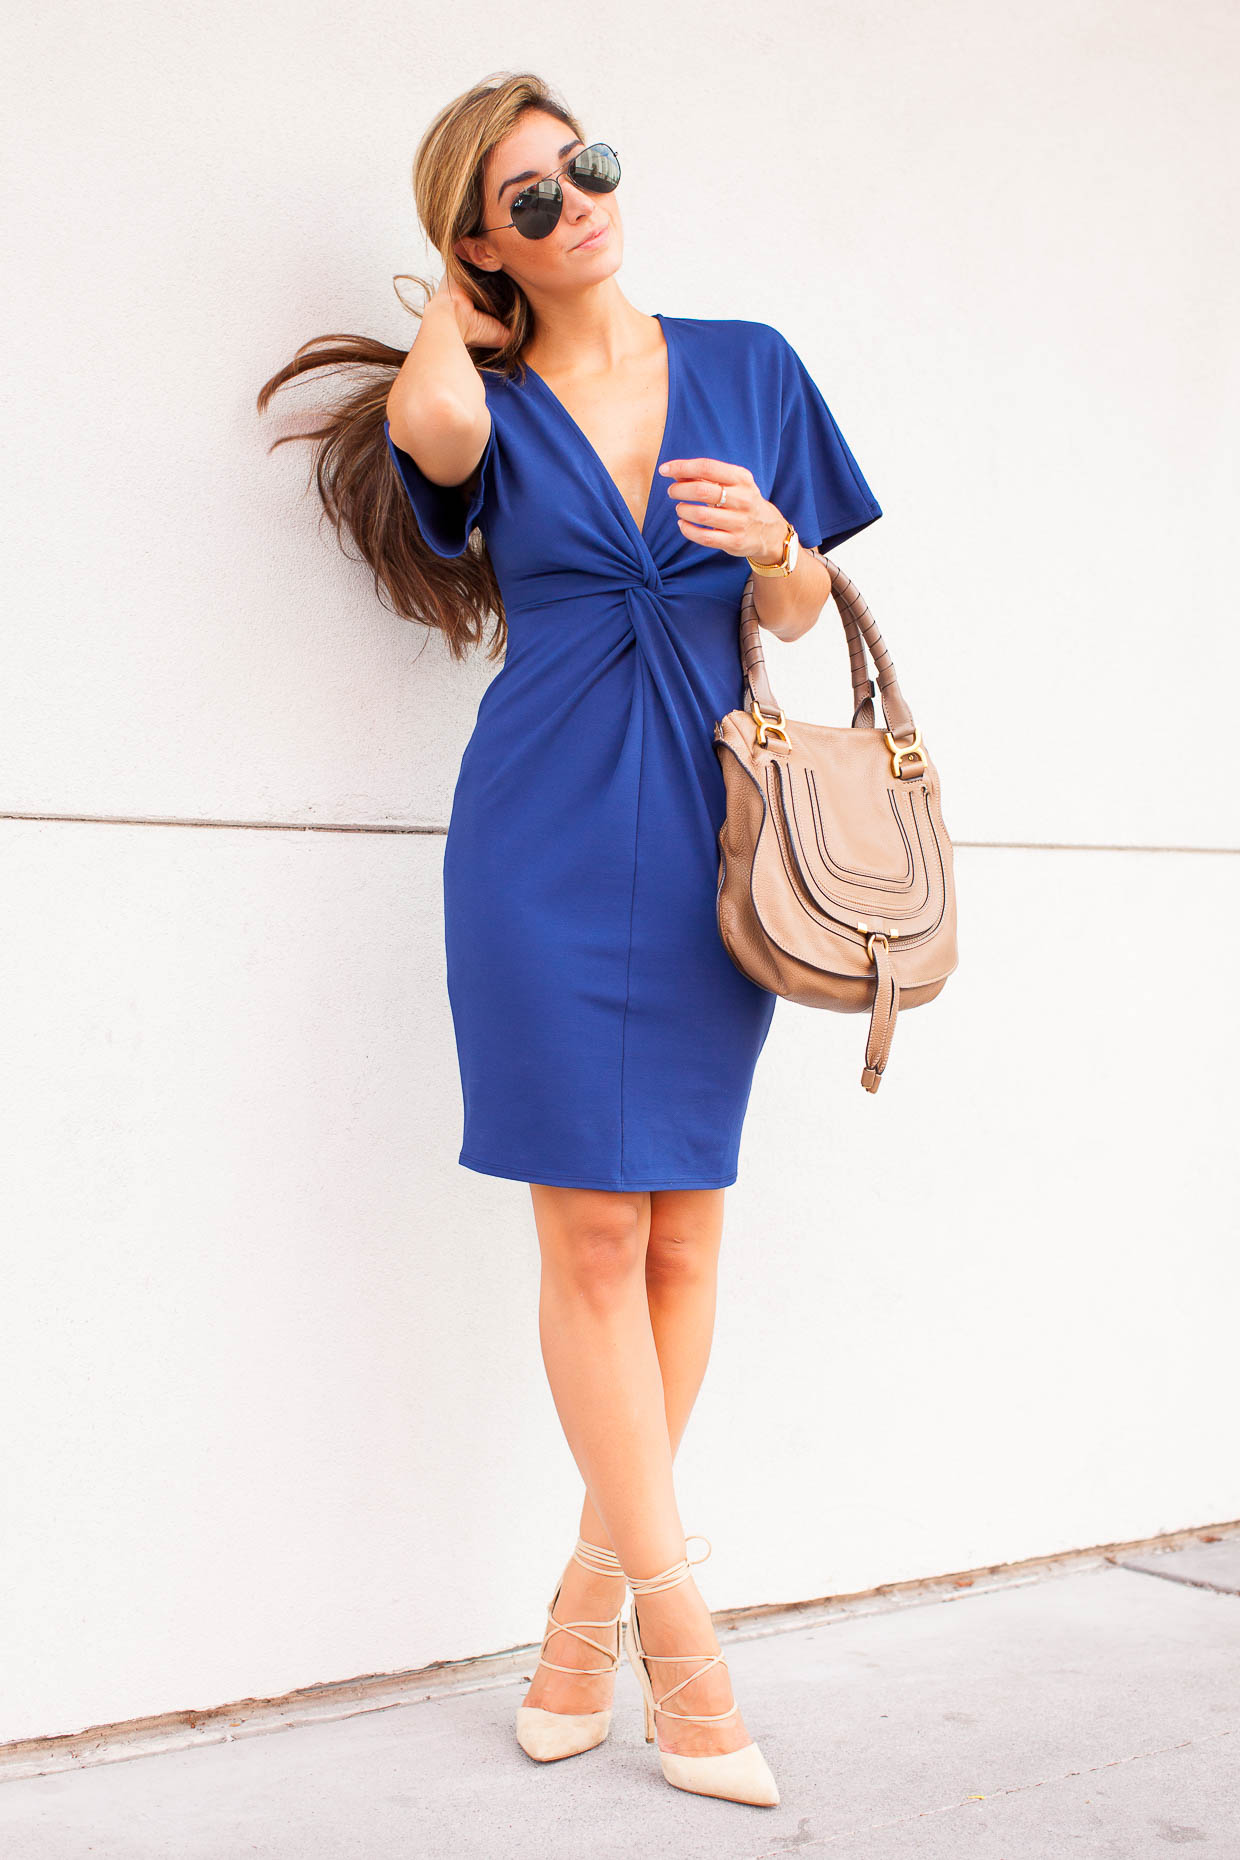 Fashion Blogger The Darling Detail is wearing a June & Hudson Front Knot Shift Dress, Sam Edelman Helaine Lace-Up d'Orsay Pumps, a Larsson & Jennings 'Lugano' Mesh Strap Watch, Ray-Ban 'Original Aviator' Sunglasses, and is holding the Chloe 'Marcie - Small' Leather Satchel.